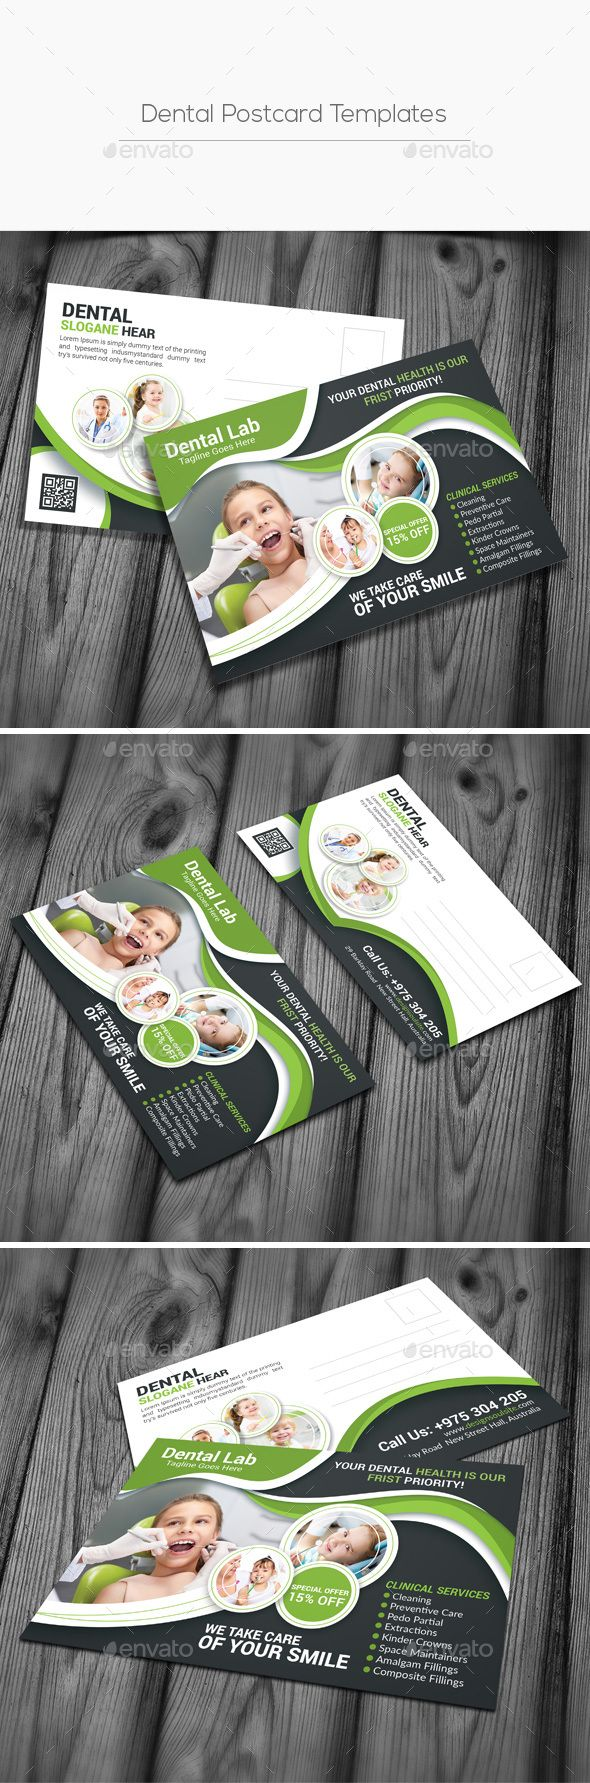 Dental Postcard Templates - Cards & Invites Template PSD. Download here: http://graphicriver.net/item/dental-postcard-templates/16563177?s_rank=849&ref=yinkira